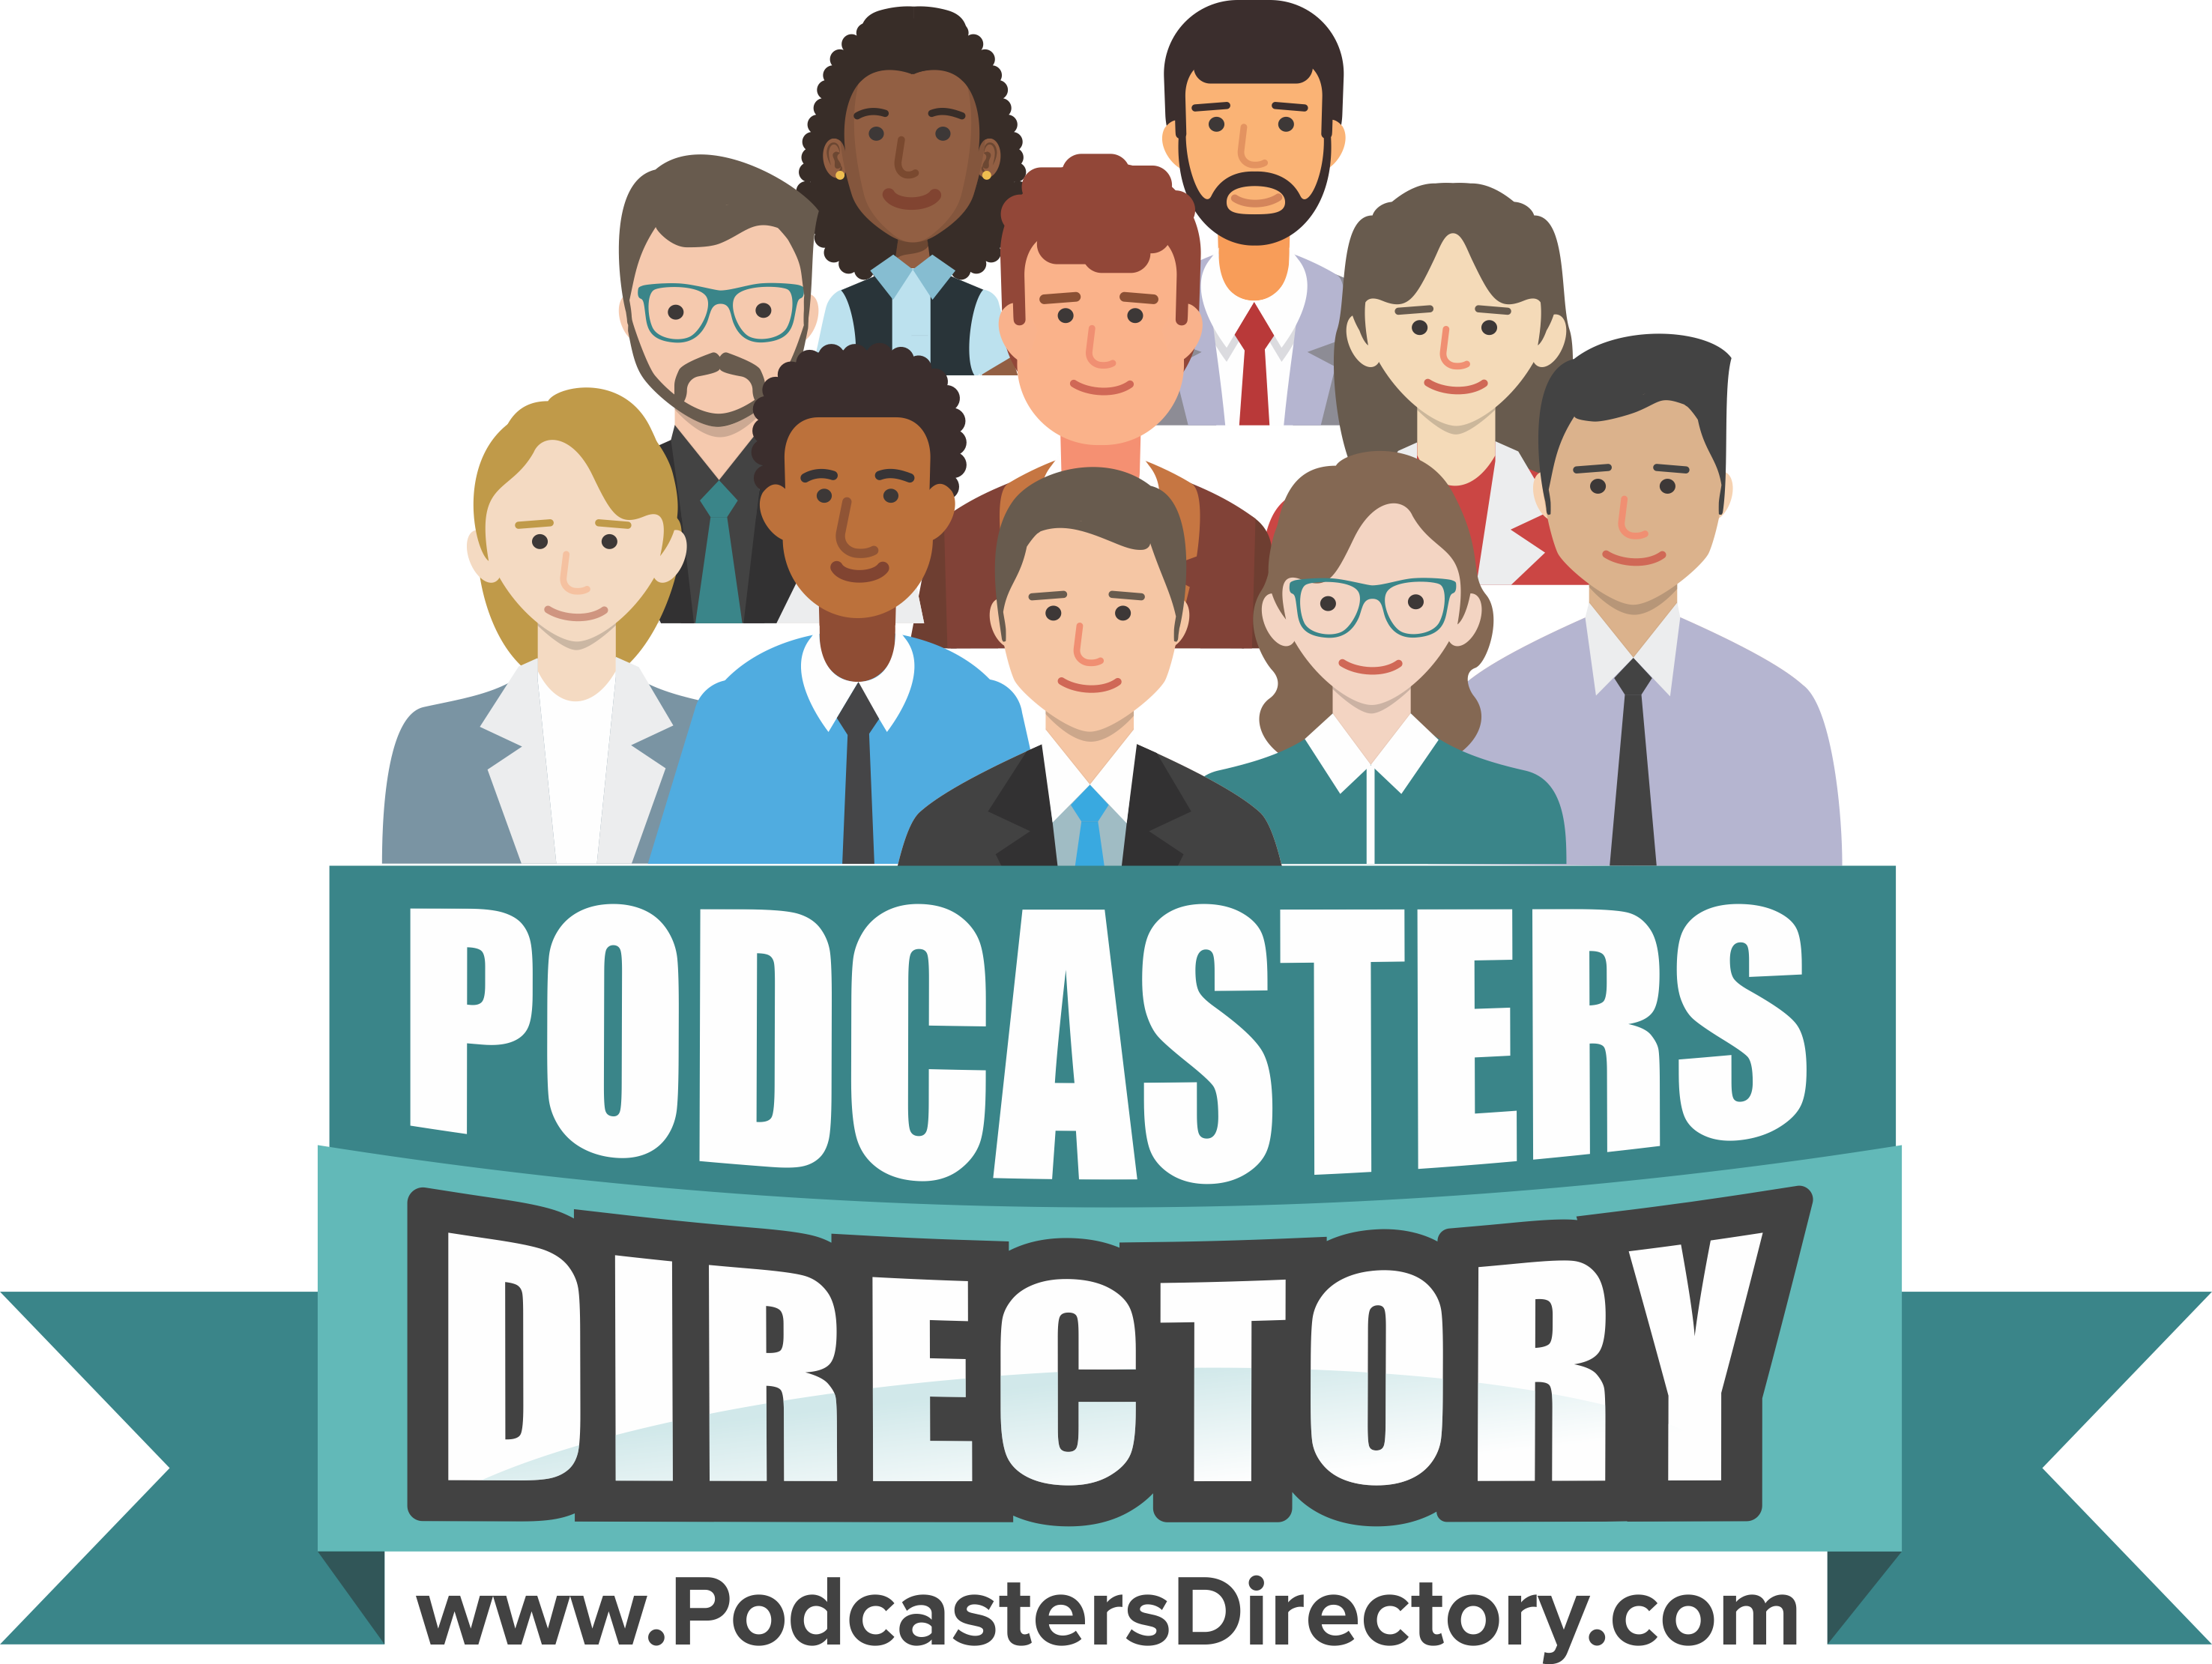 Podcasters Directory Logo